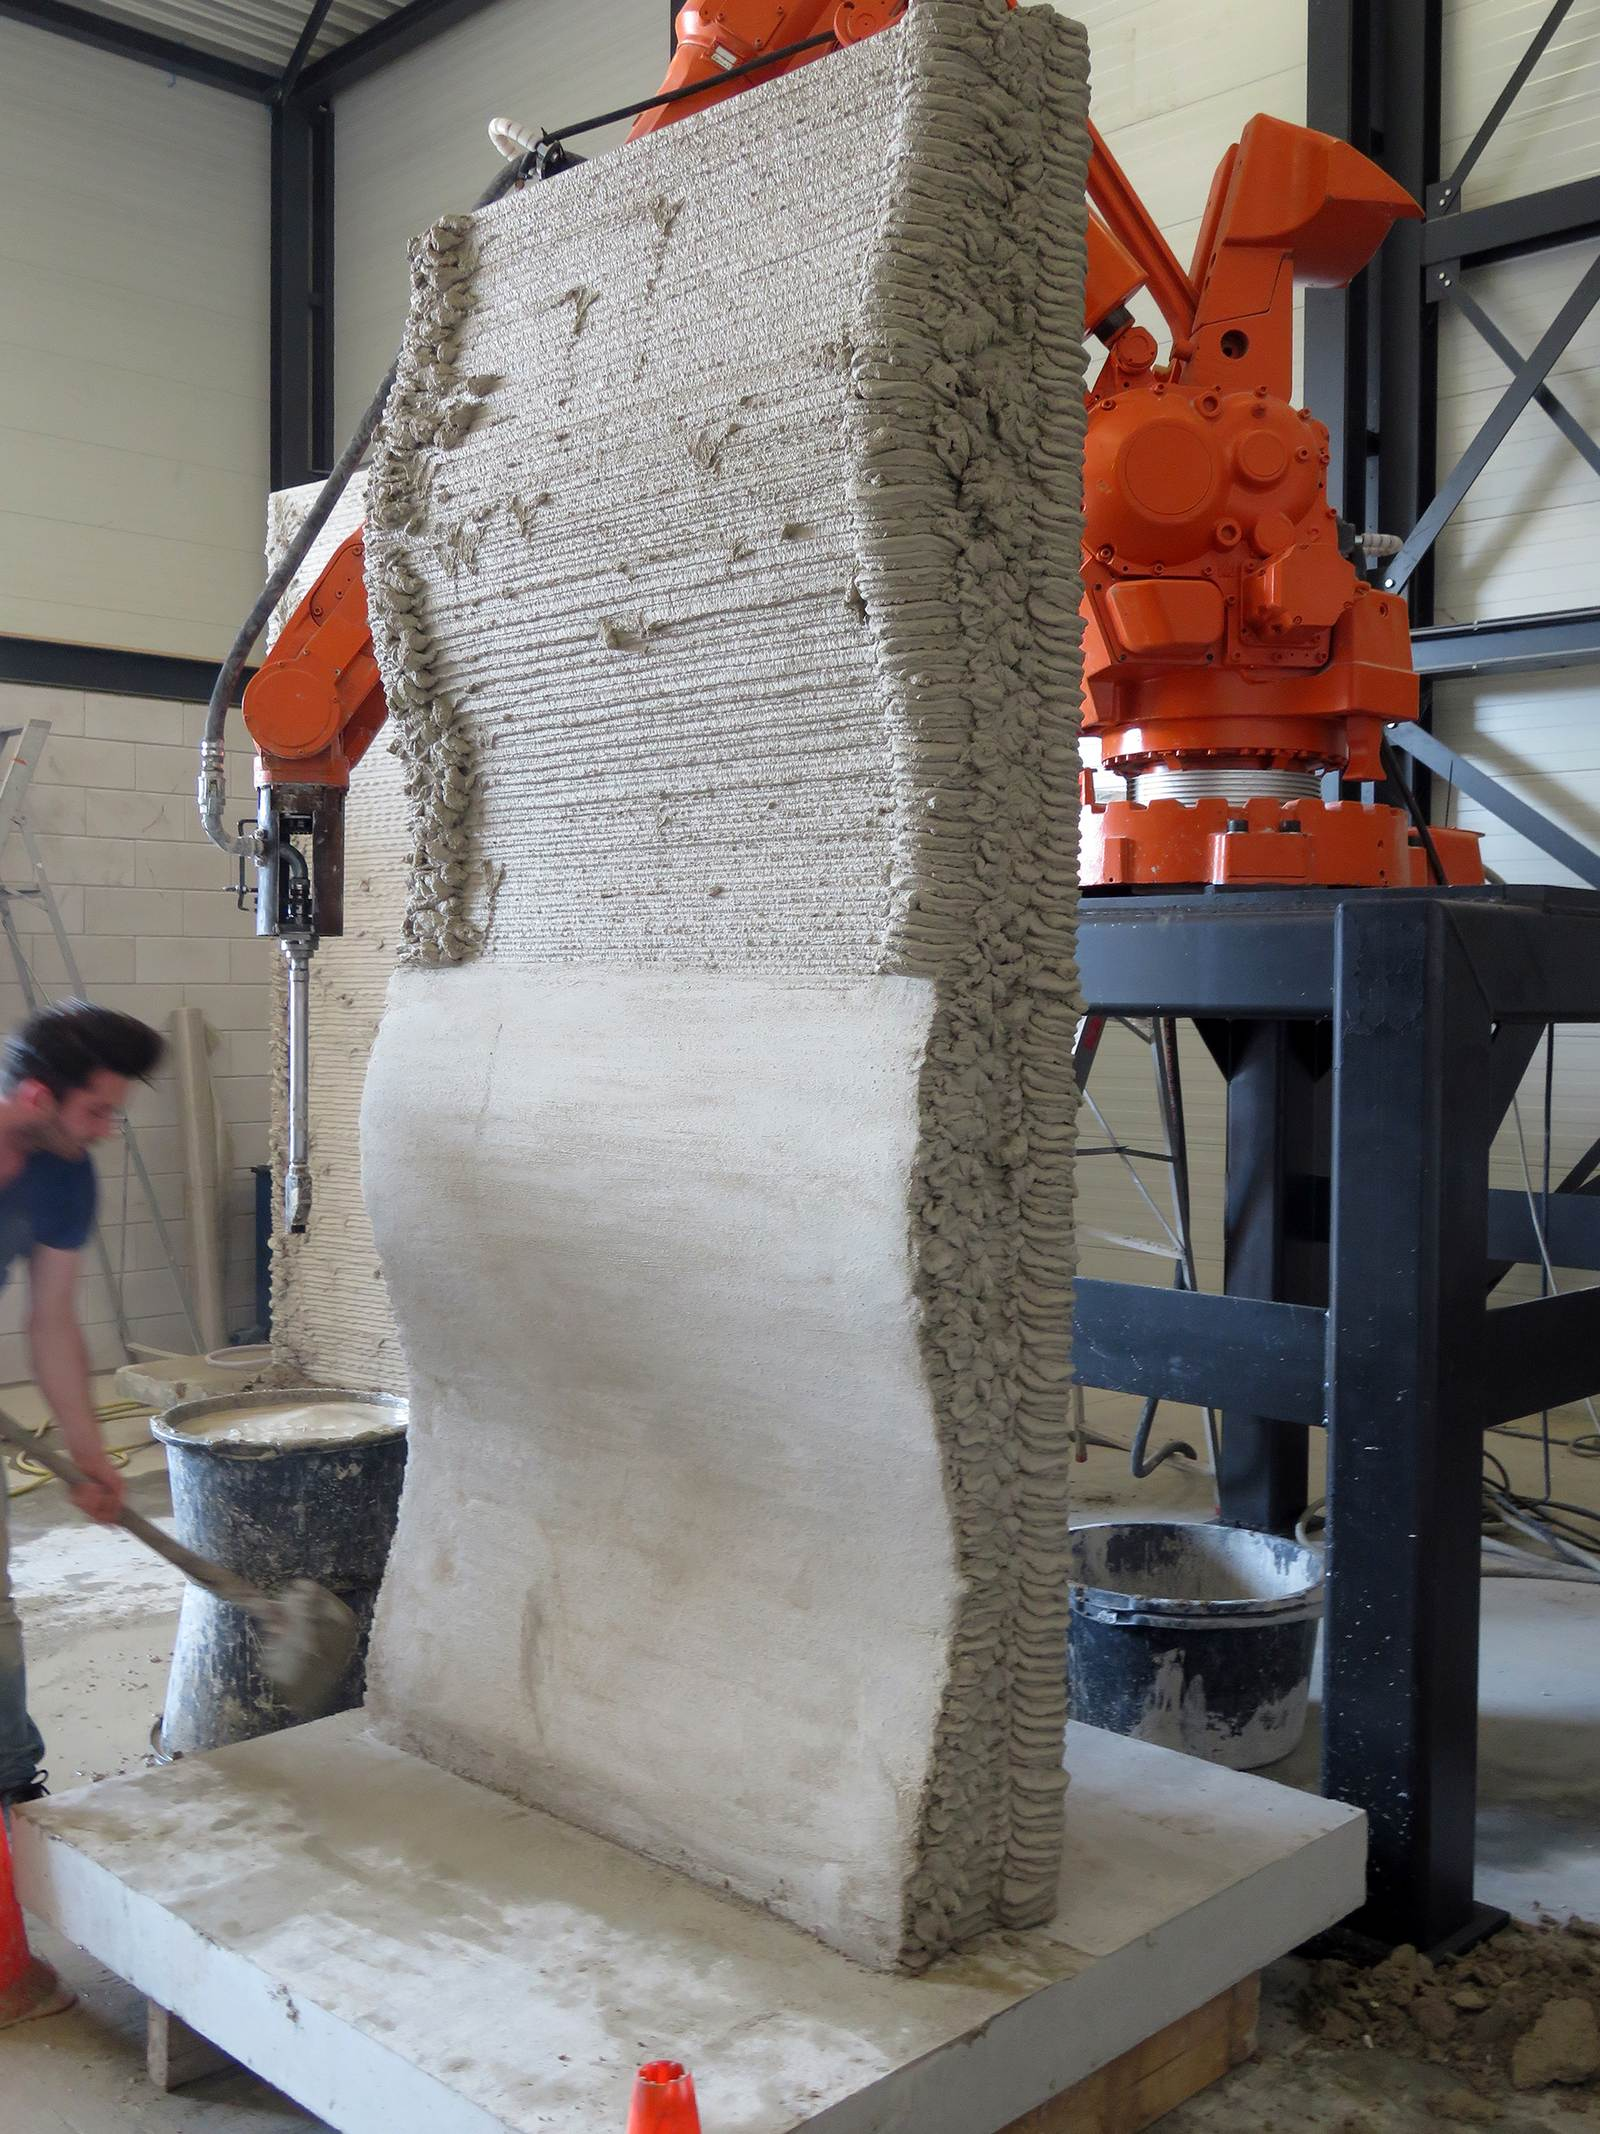 Another 3D printed concrete formwork by Heijmans; this one has the lower surface manually smoothed